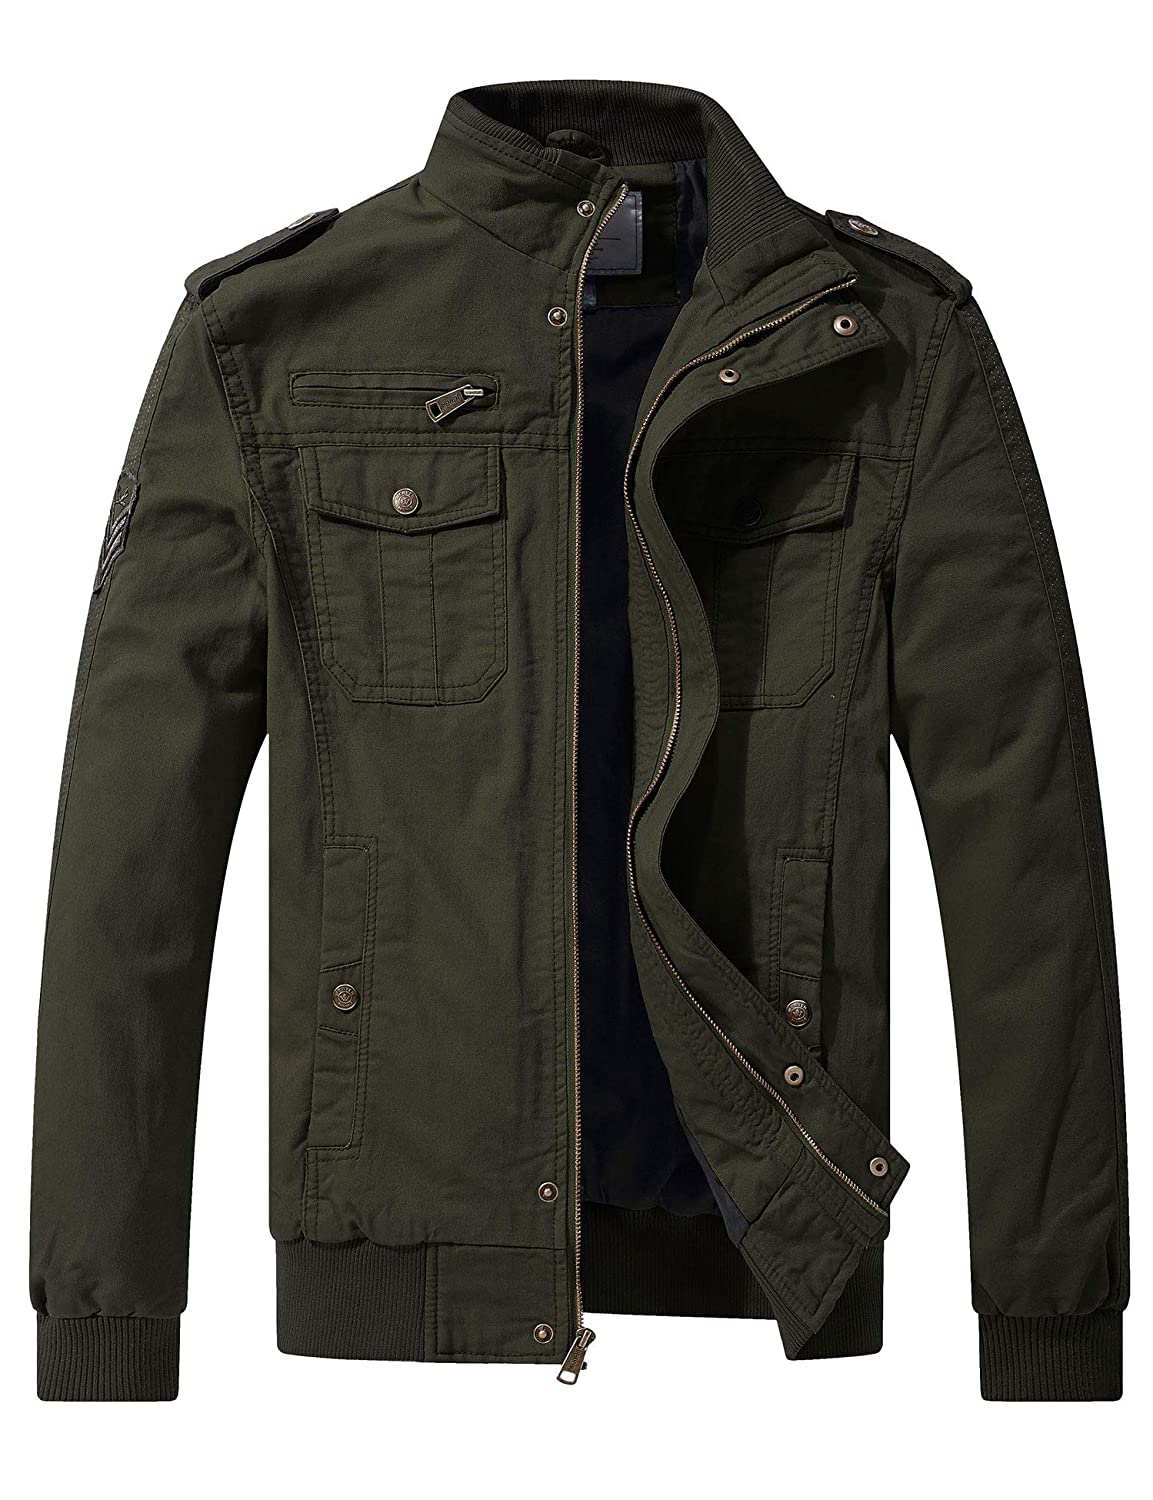 WenVen Men's Casual Cotton Military Jacket at Amazon Men's Clothing store: